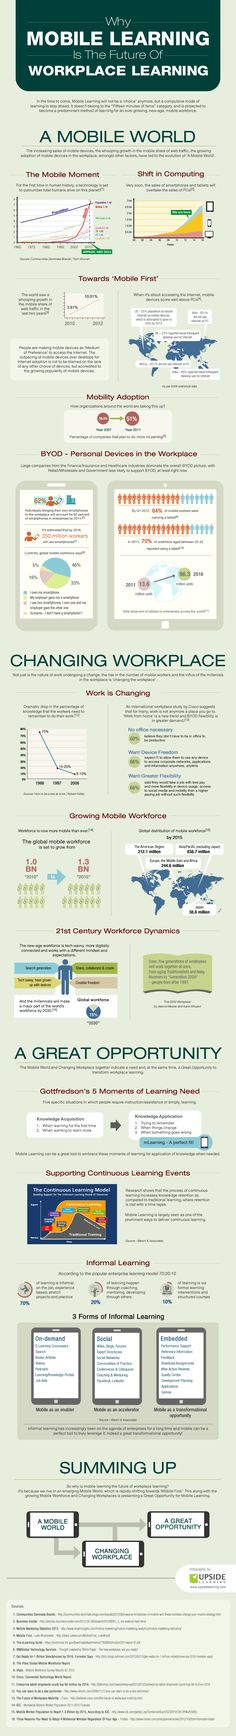 [Infografía] Why mLearning is the future of workplace learning (EN)